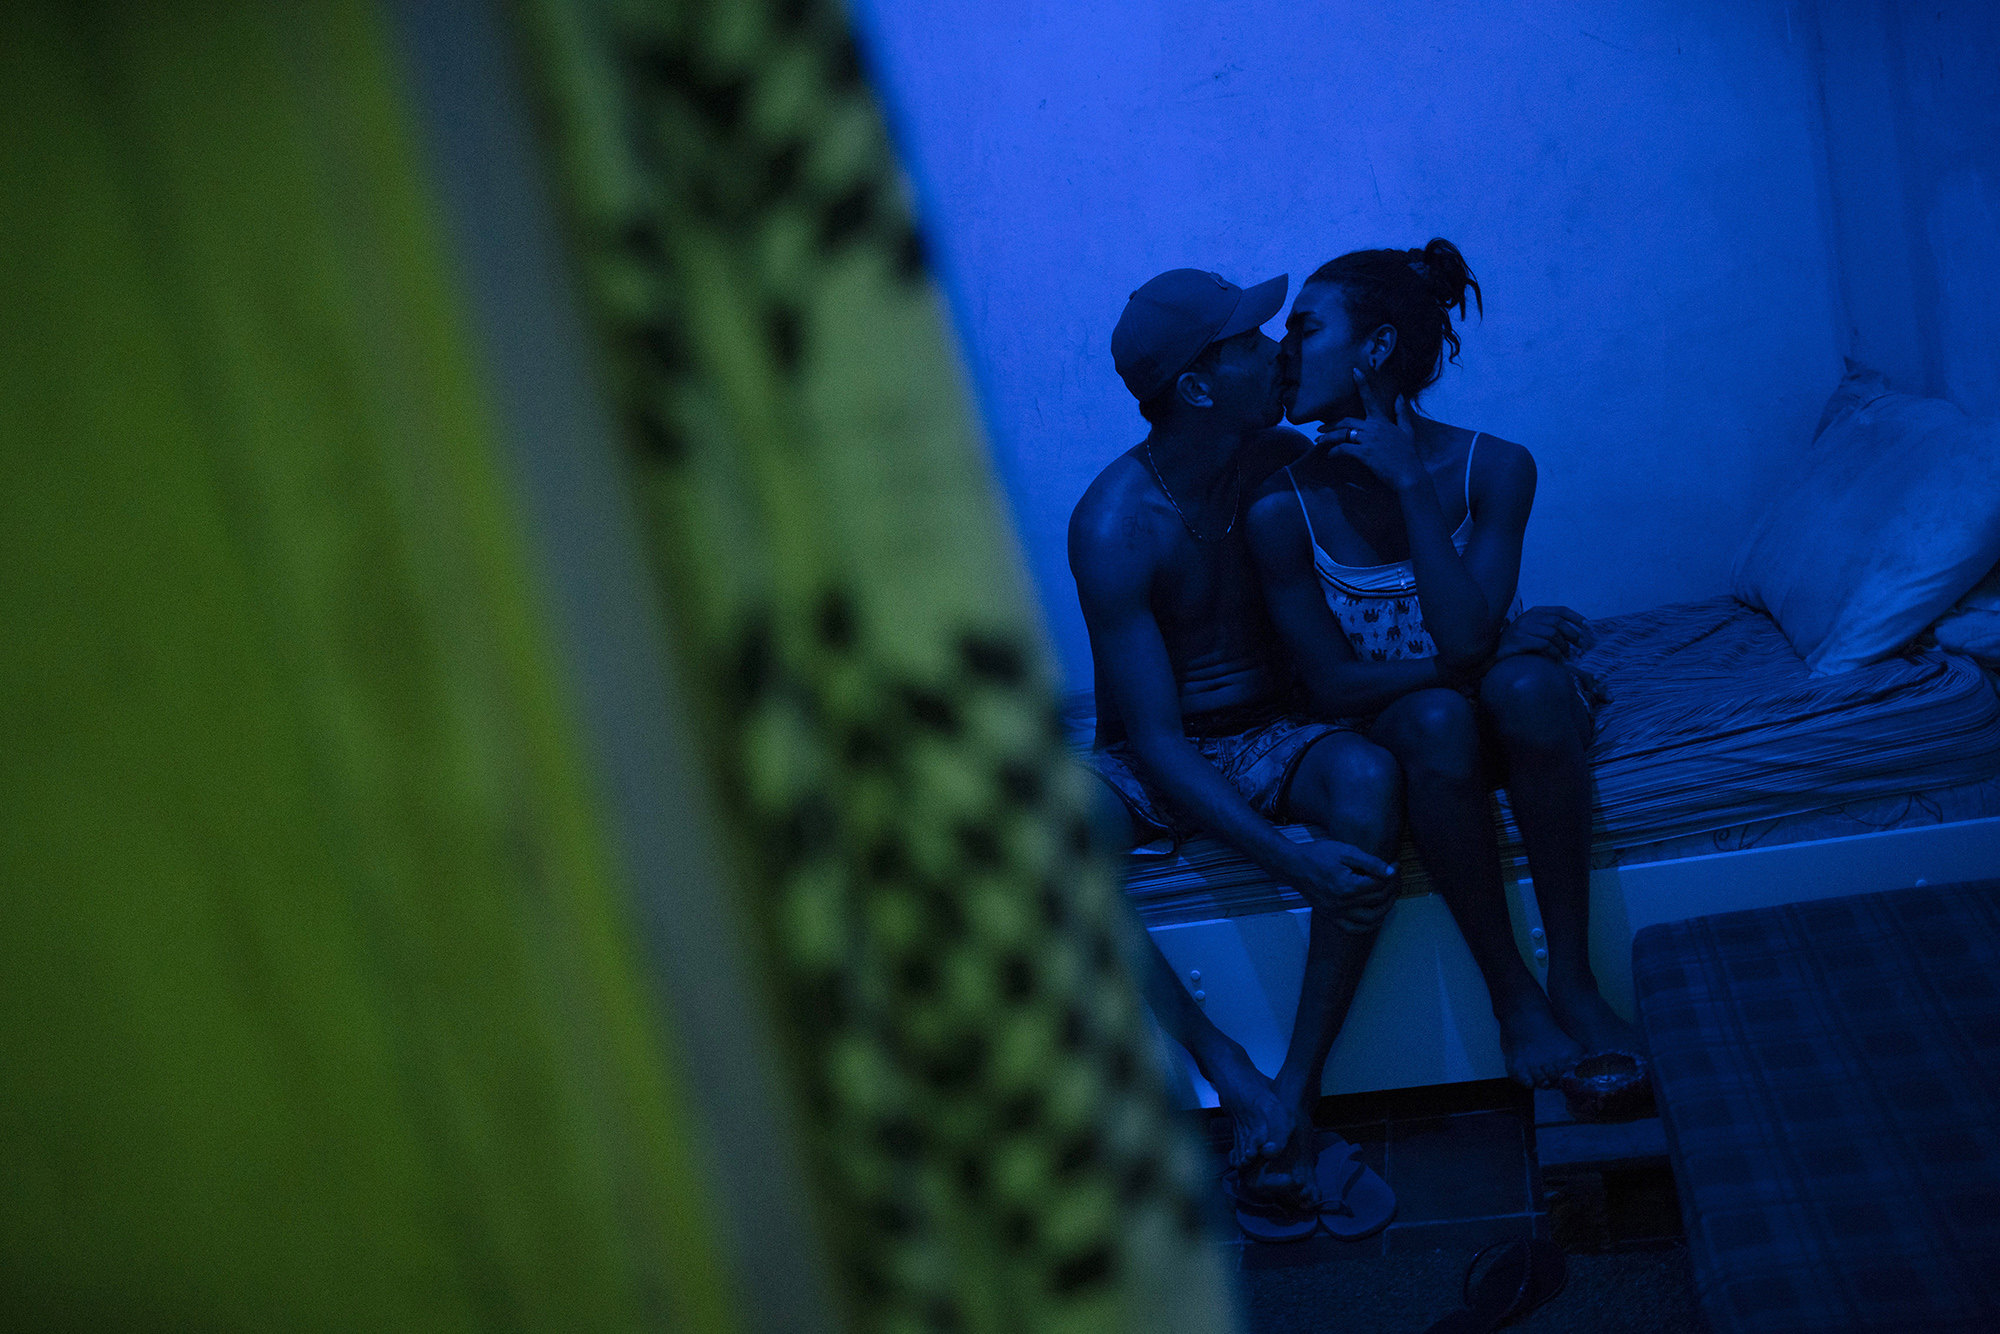 Richard Santos and his partner Lia kiss in their bedroom in the squat known as Casa Nem, occupied by members of the LGBTQ community who are in self-quarantine as a protective measure against the new coronavirus, in Rio de Janeiro, Brazil, Saturday, May 23, 2020. Several years ago Casa Nem became a shelter for LGBTQ victims of violence and those who, rejected by their families, have nowhere to live.